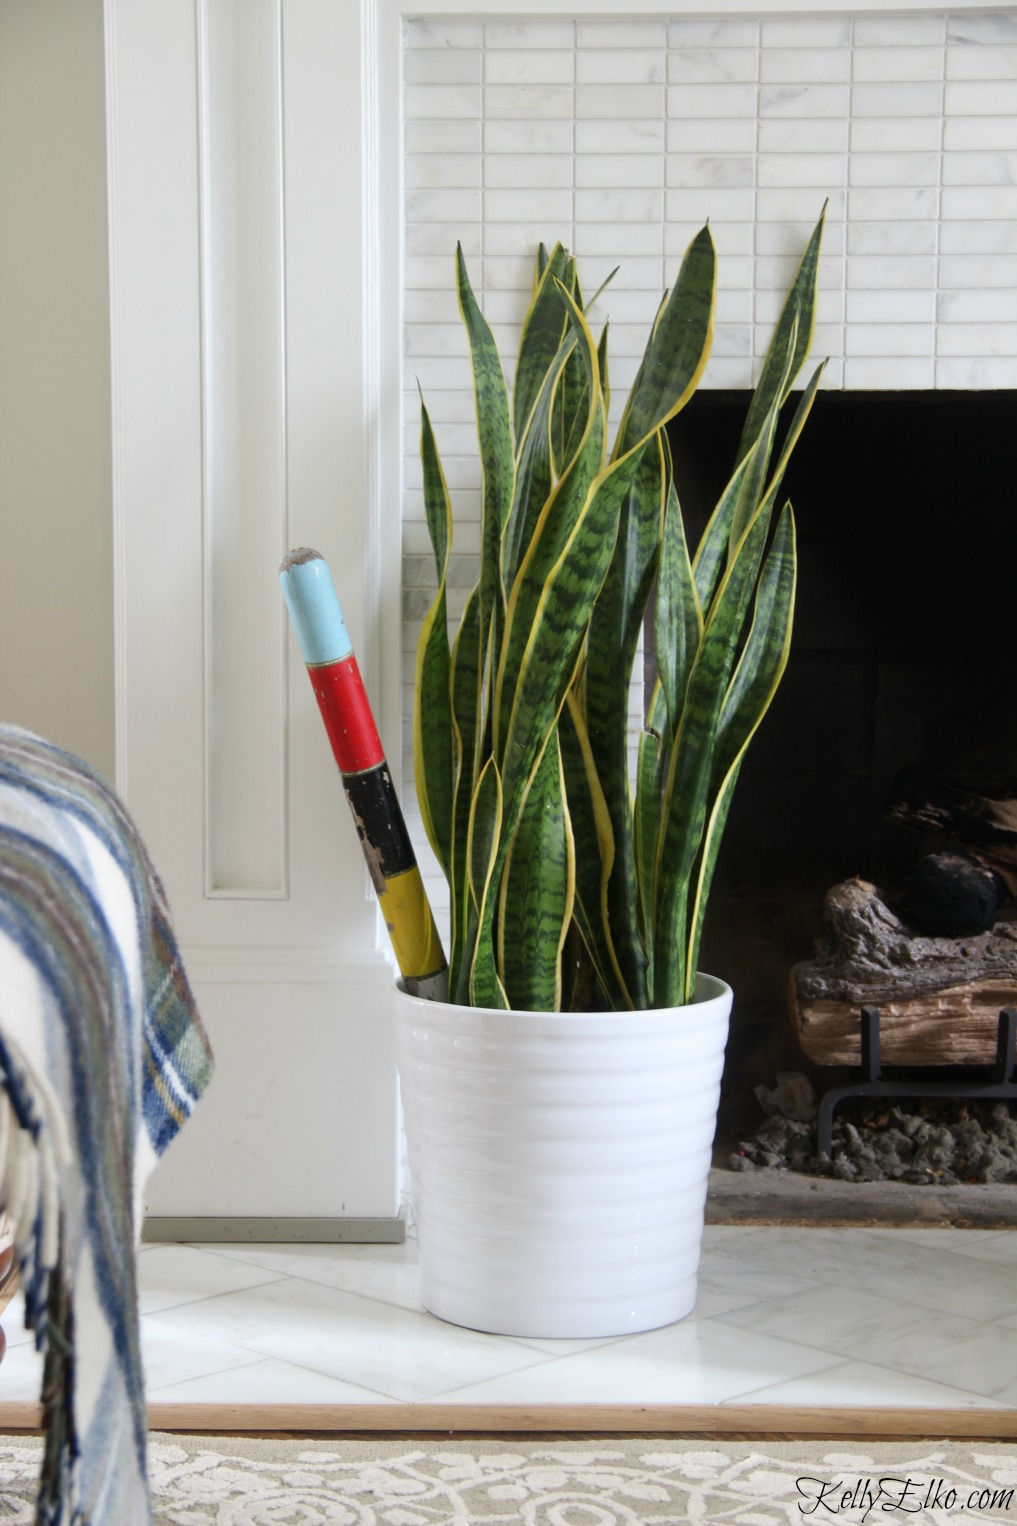 Add an easy to care for snake plant to your house kellyelko.com